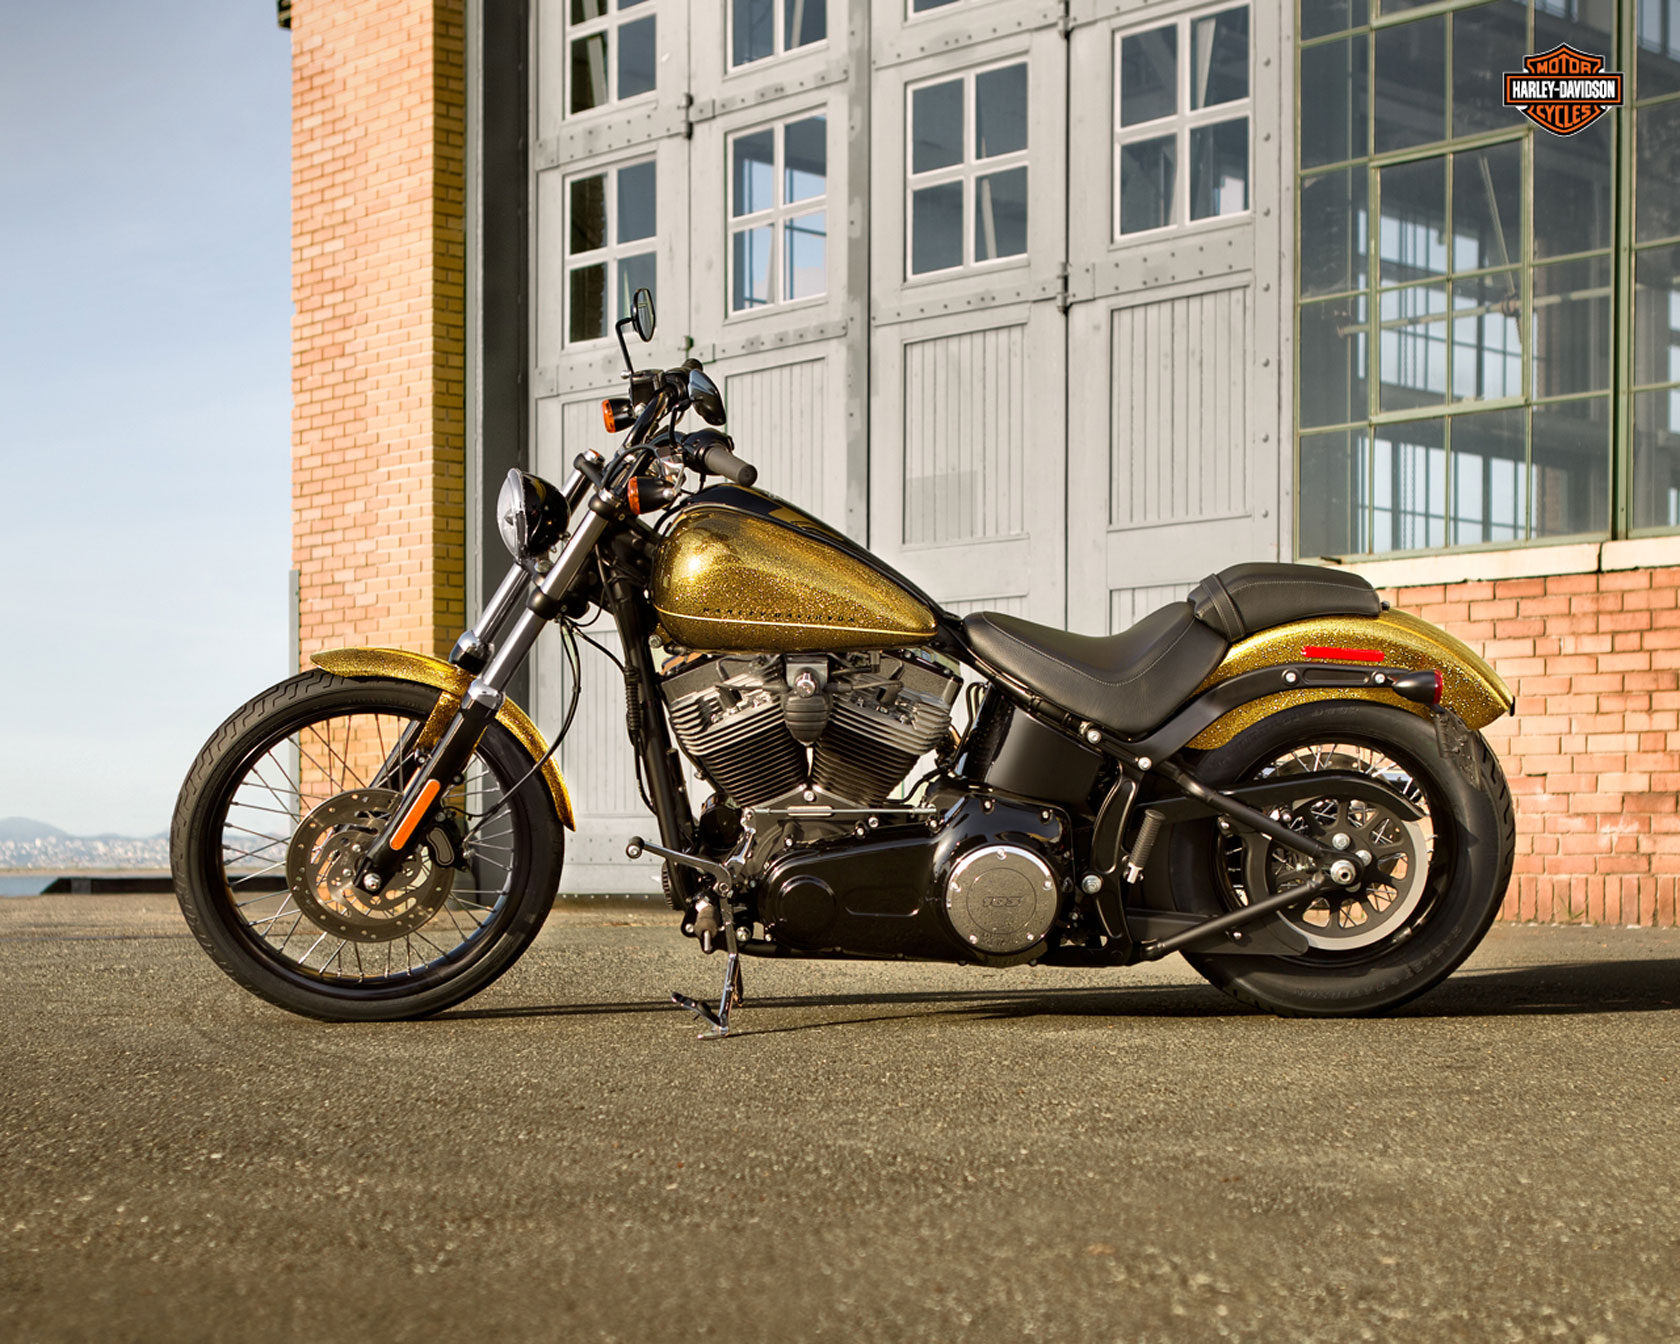 2013 Harley-Davidson FXS Blackline Review